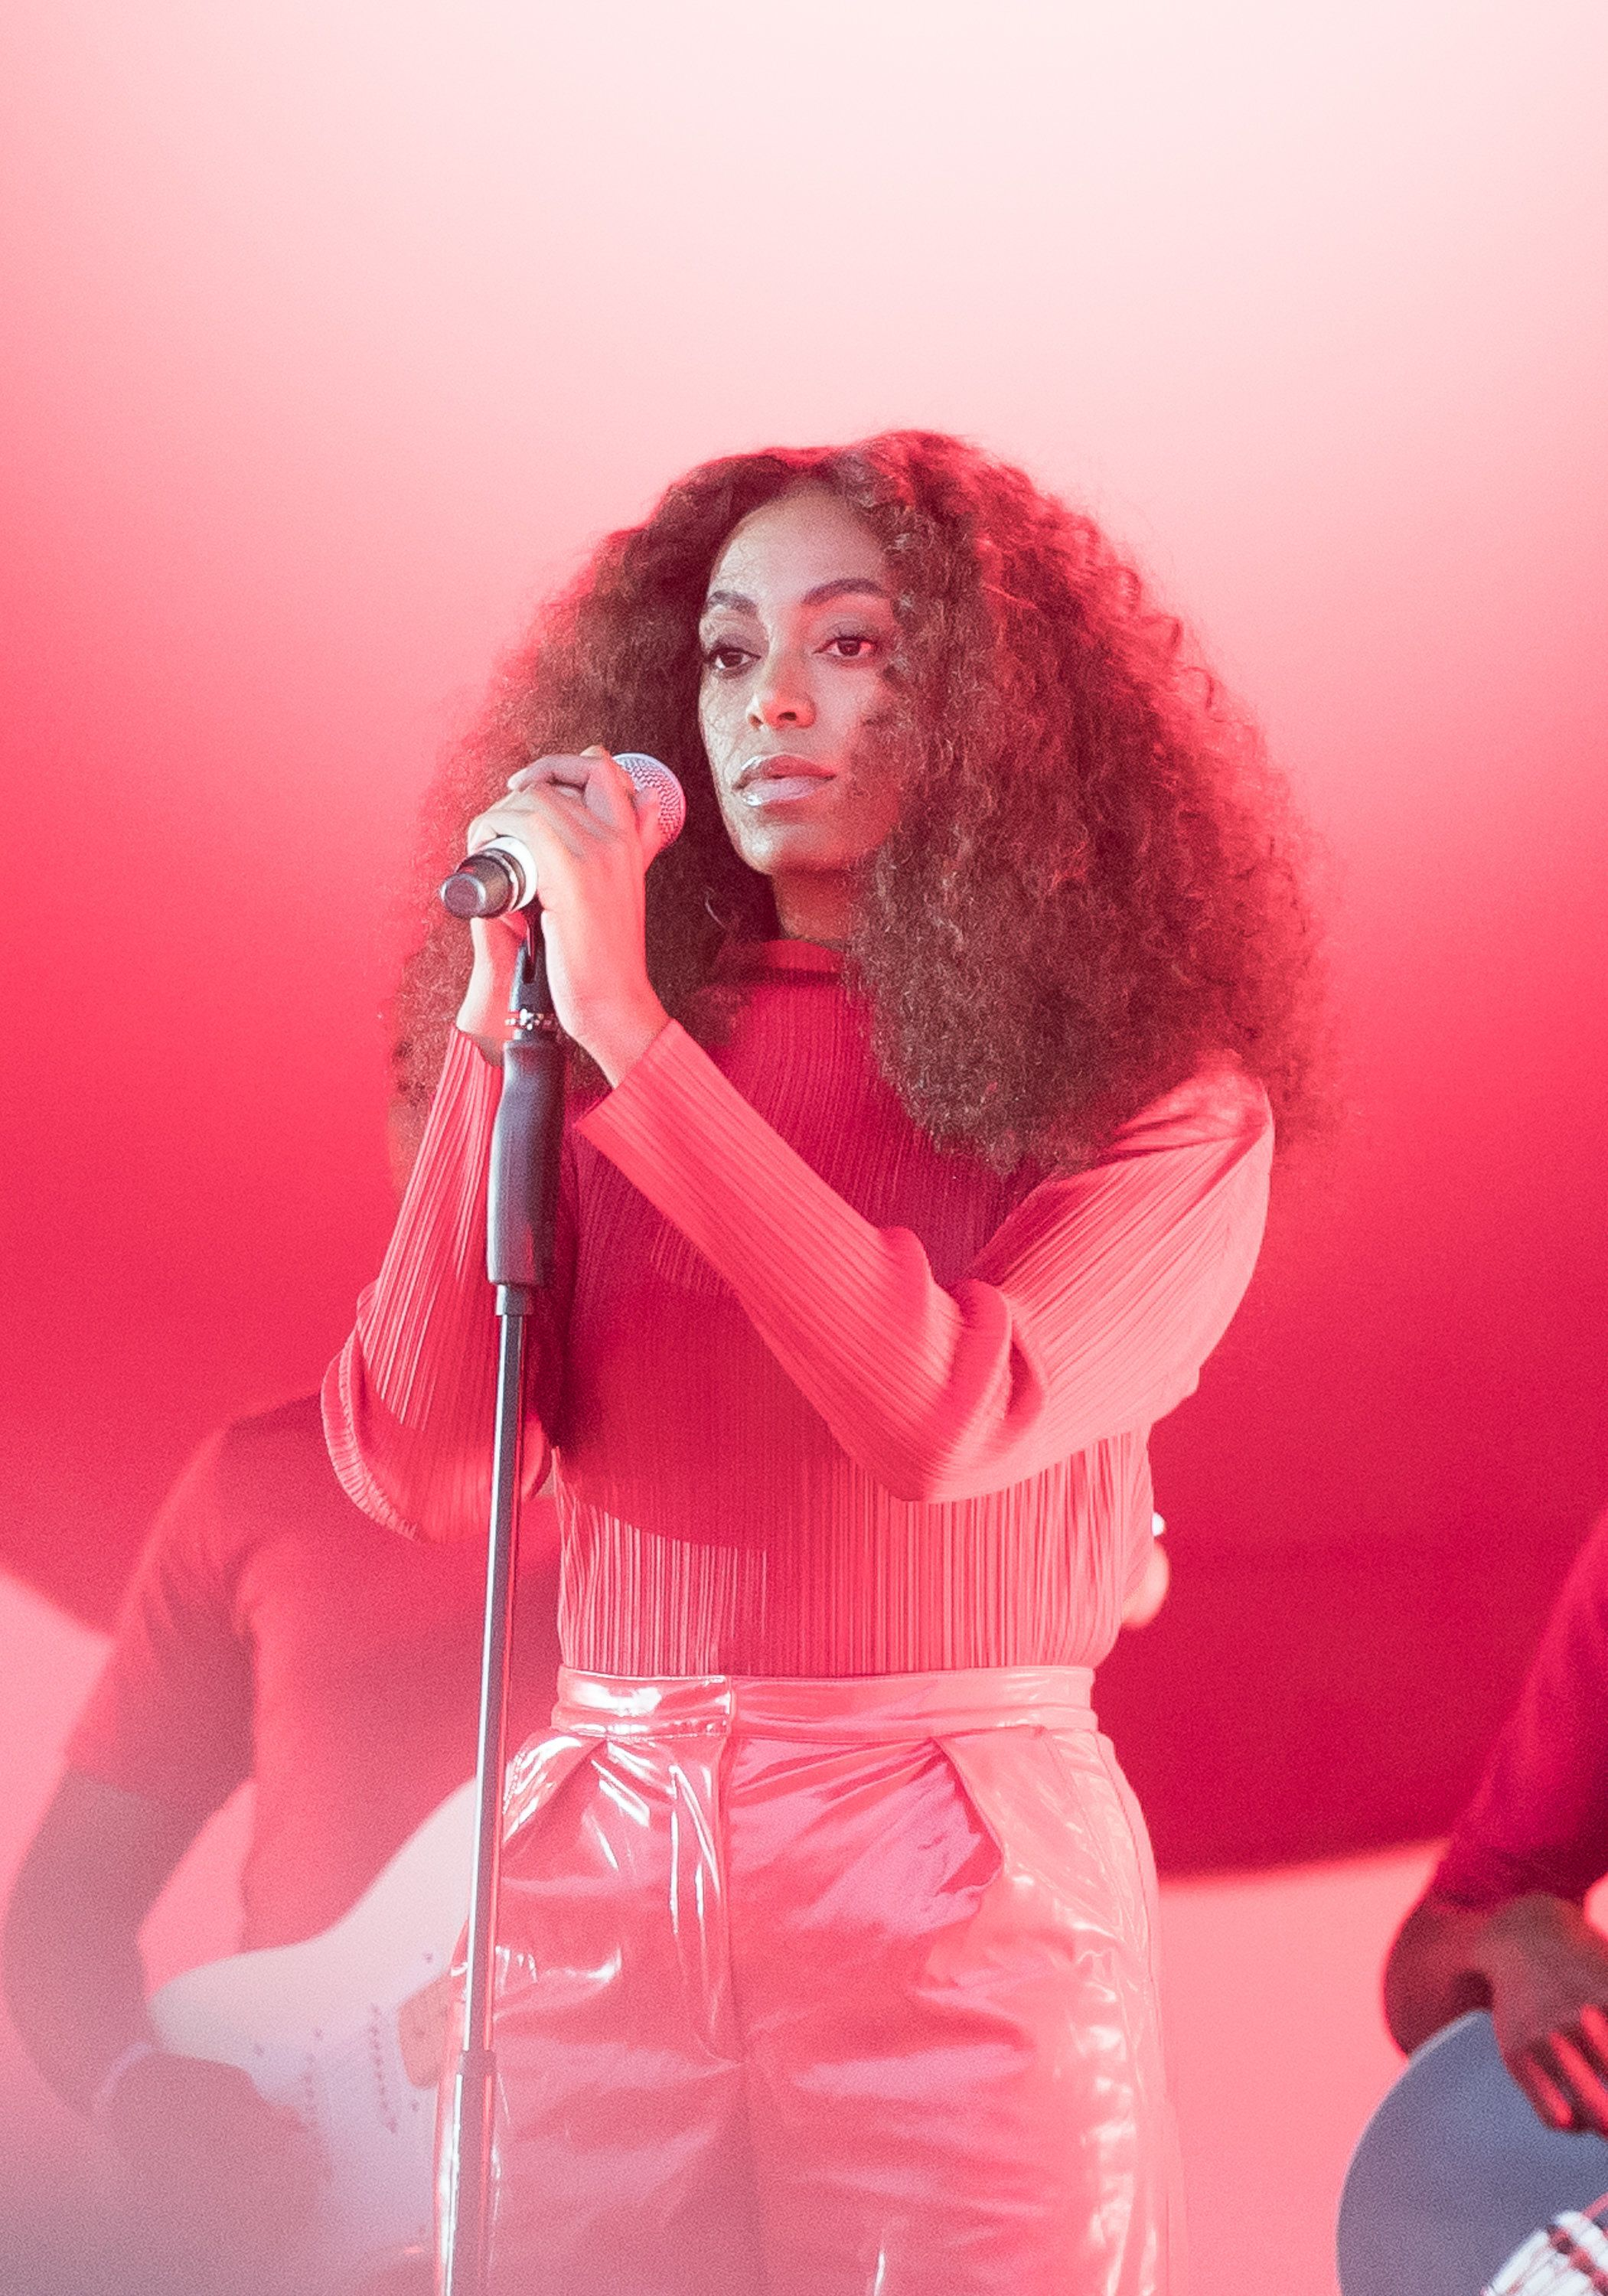 GLASTONBURY, ENGLAND - JUNE 24:  Solange performs on day 3 of the Glastonbury Festival 2017 at Worthy Farm, Pilton on June 24, 2017 in Glastonbury, England.  (Photo by Samir Hussein/Redferns)